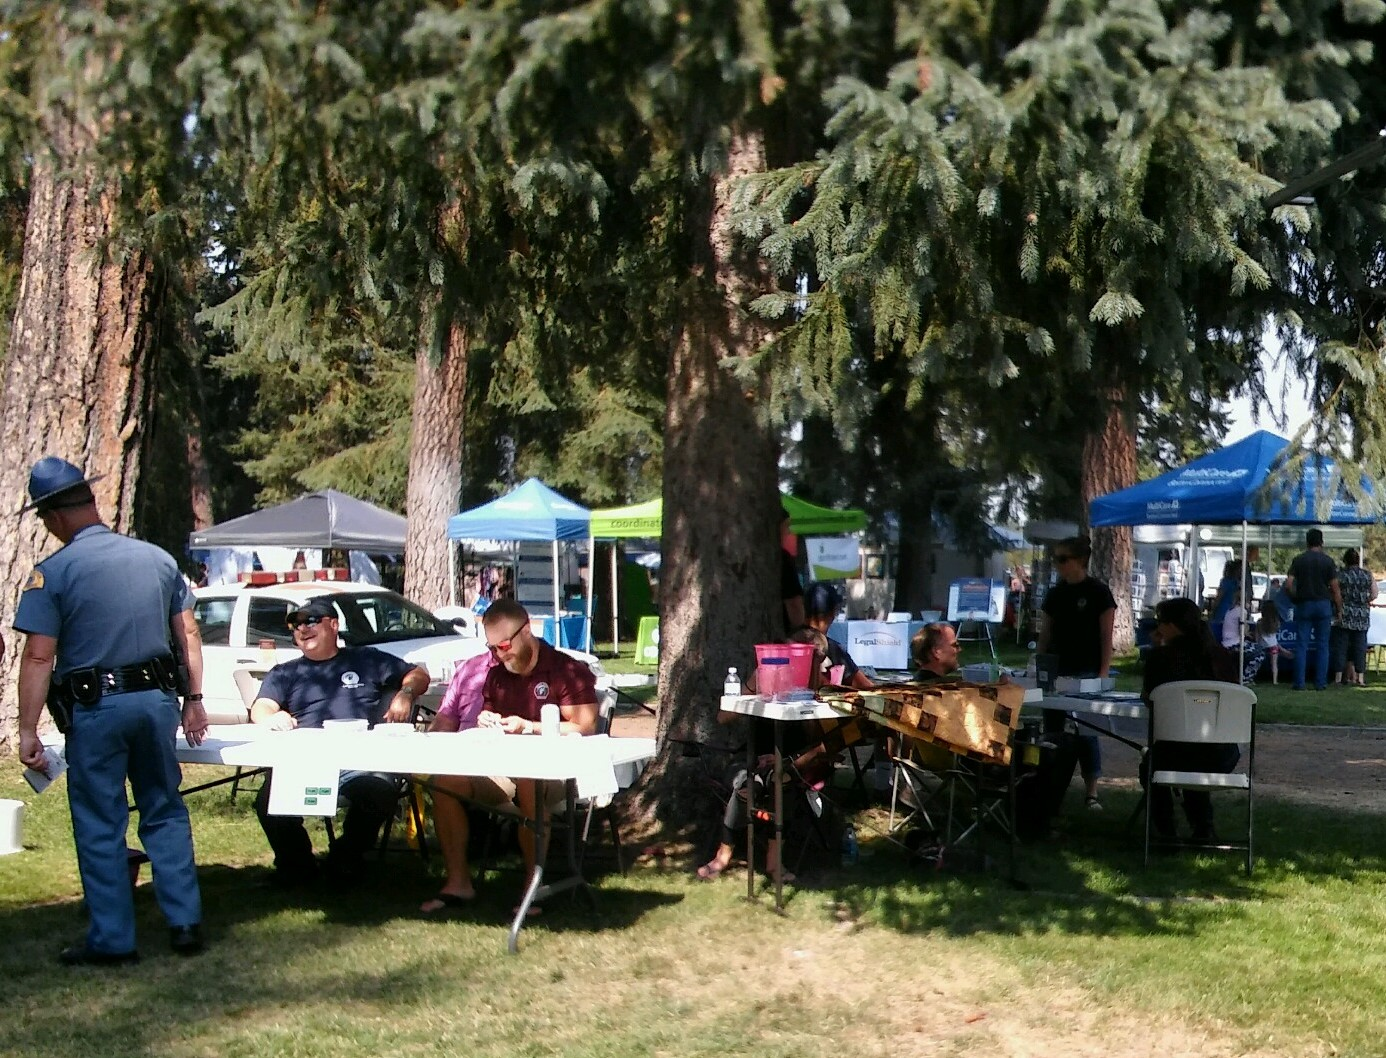 Vendors - Health, Safety and Wellness, and Craft vendors